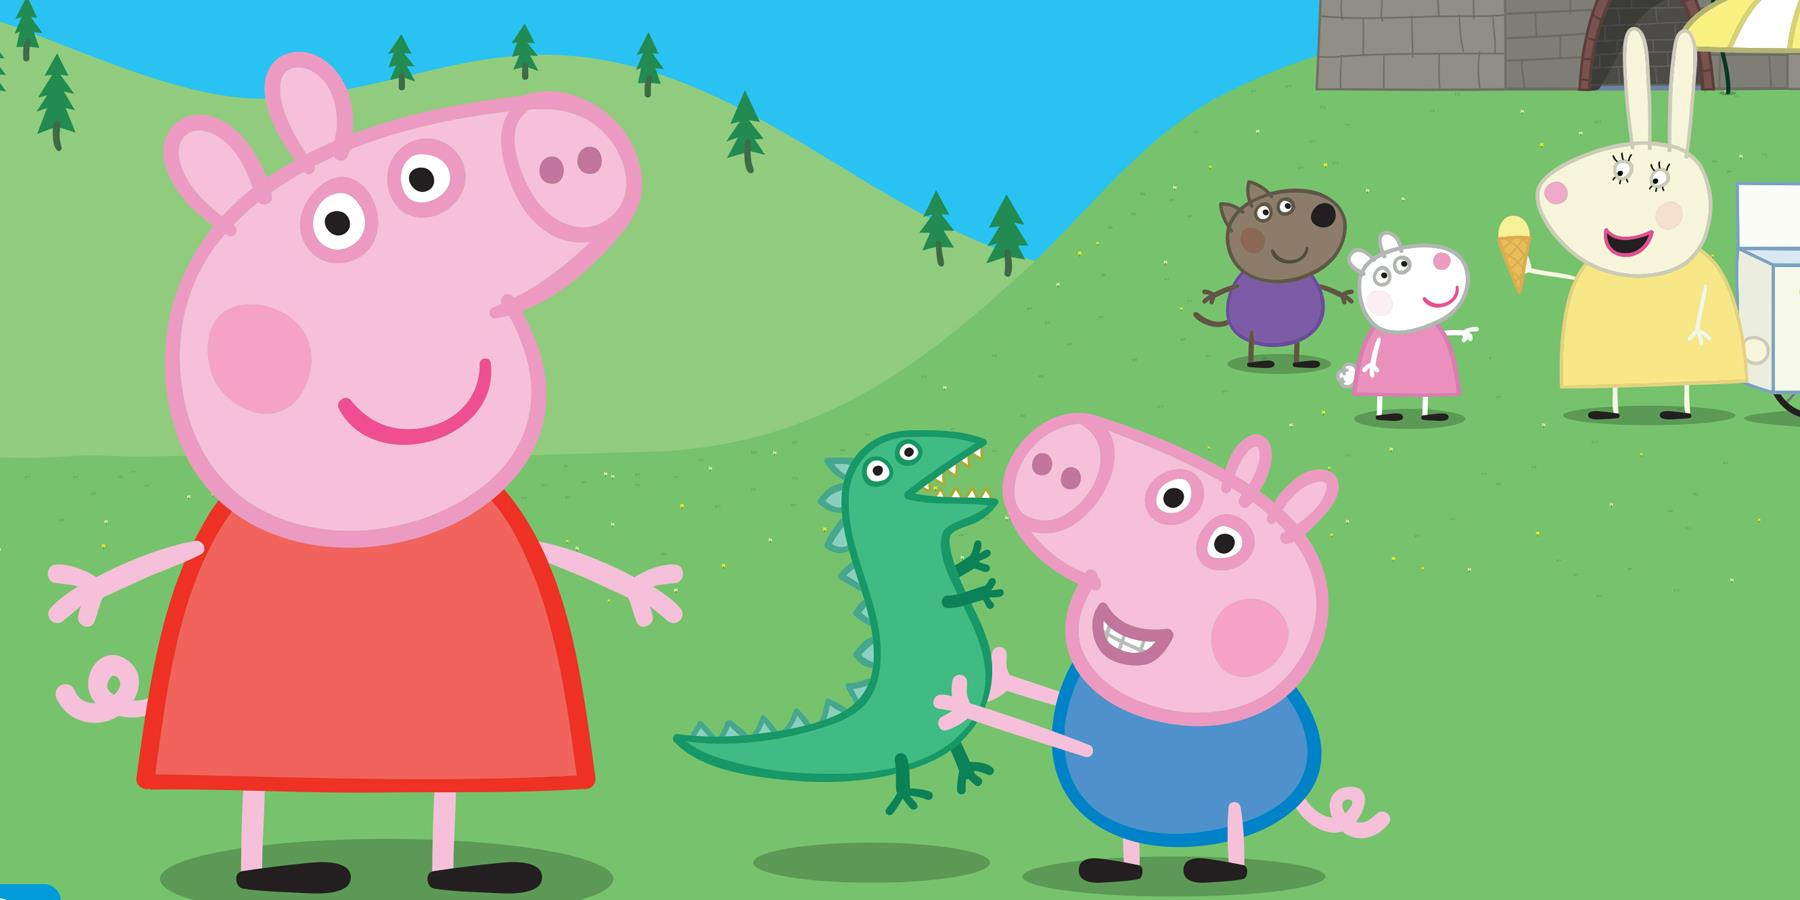 Peppa Pig and George the Pig